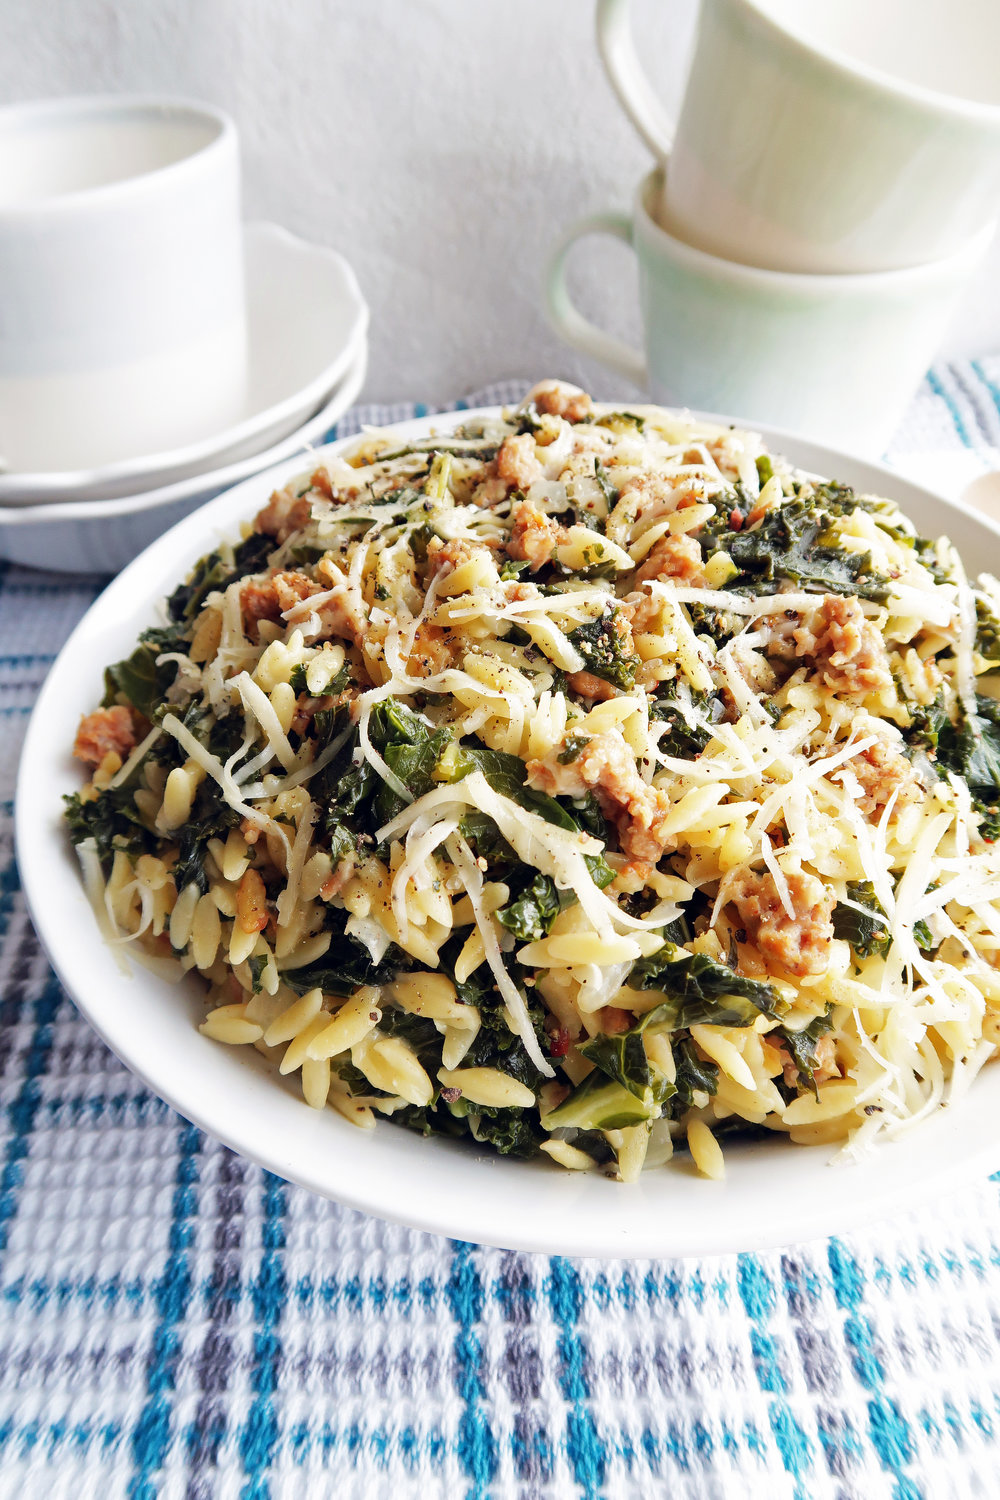 Close-up side angled view of orzo pasta with Italian sausage and kale in a large pasta bowl.